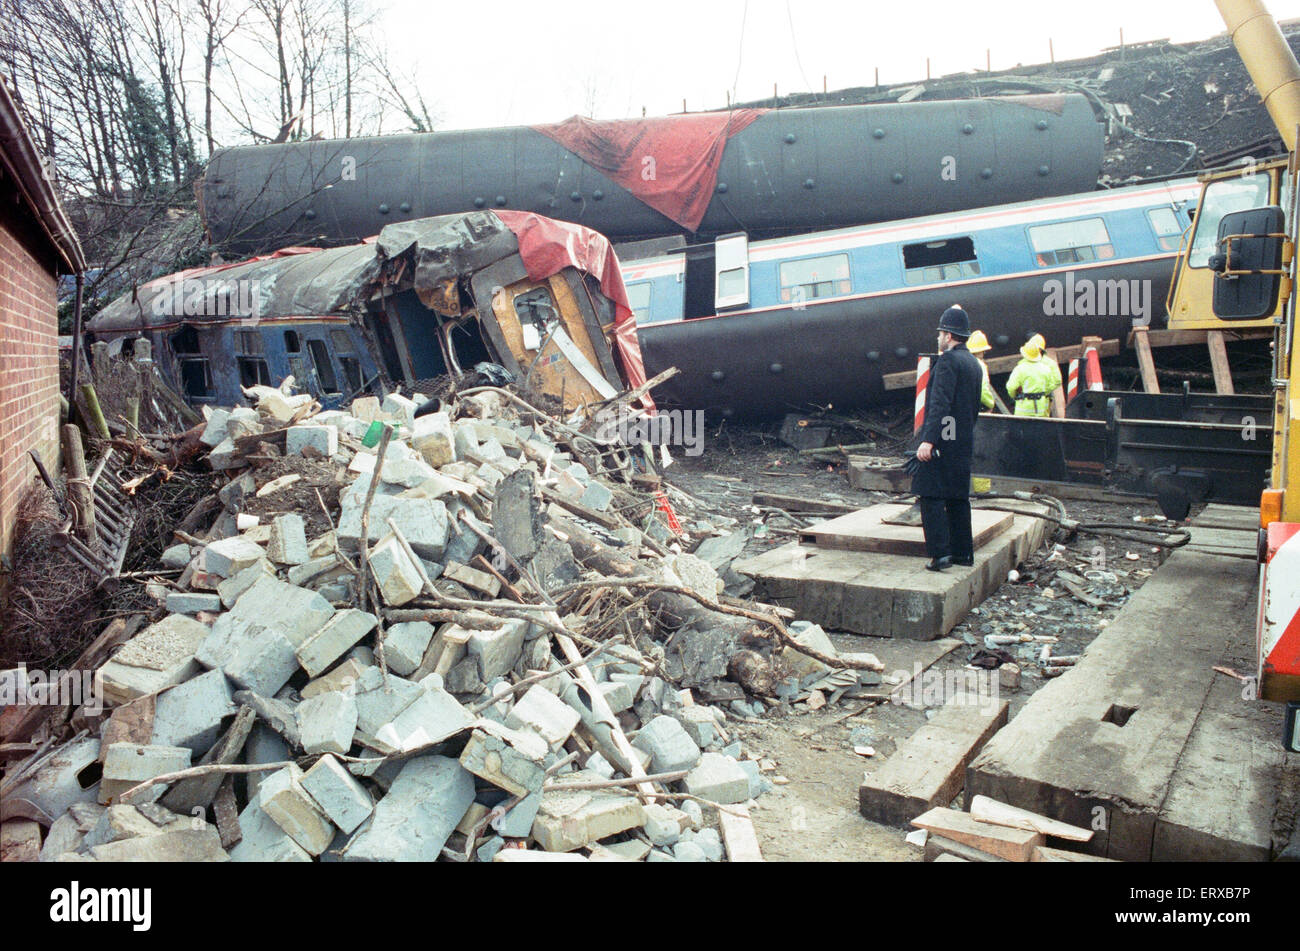 Purley  train crash On 4 March 1989 the 12:50 from Horsham stopped at Purley railway station. As it left the station, - Stock Image